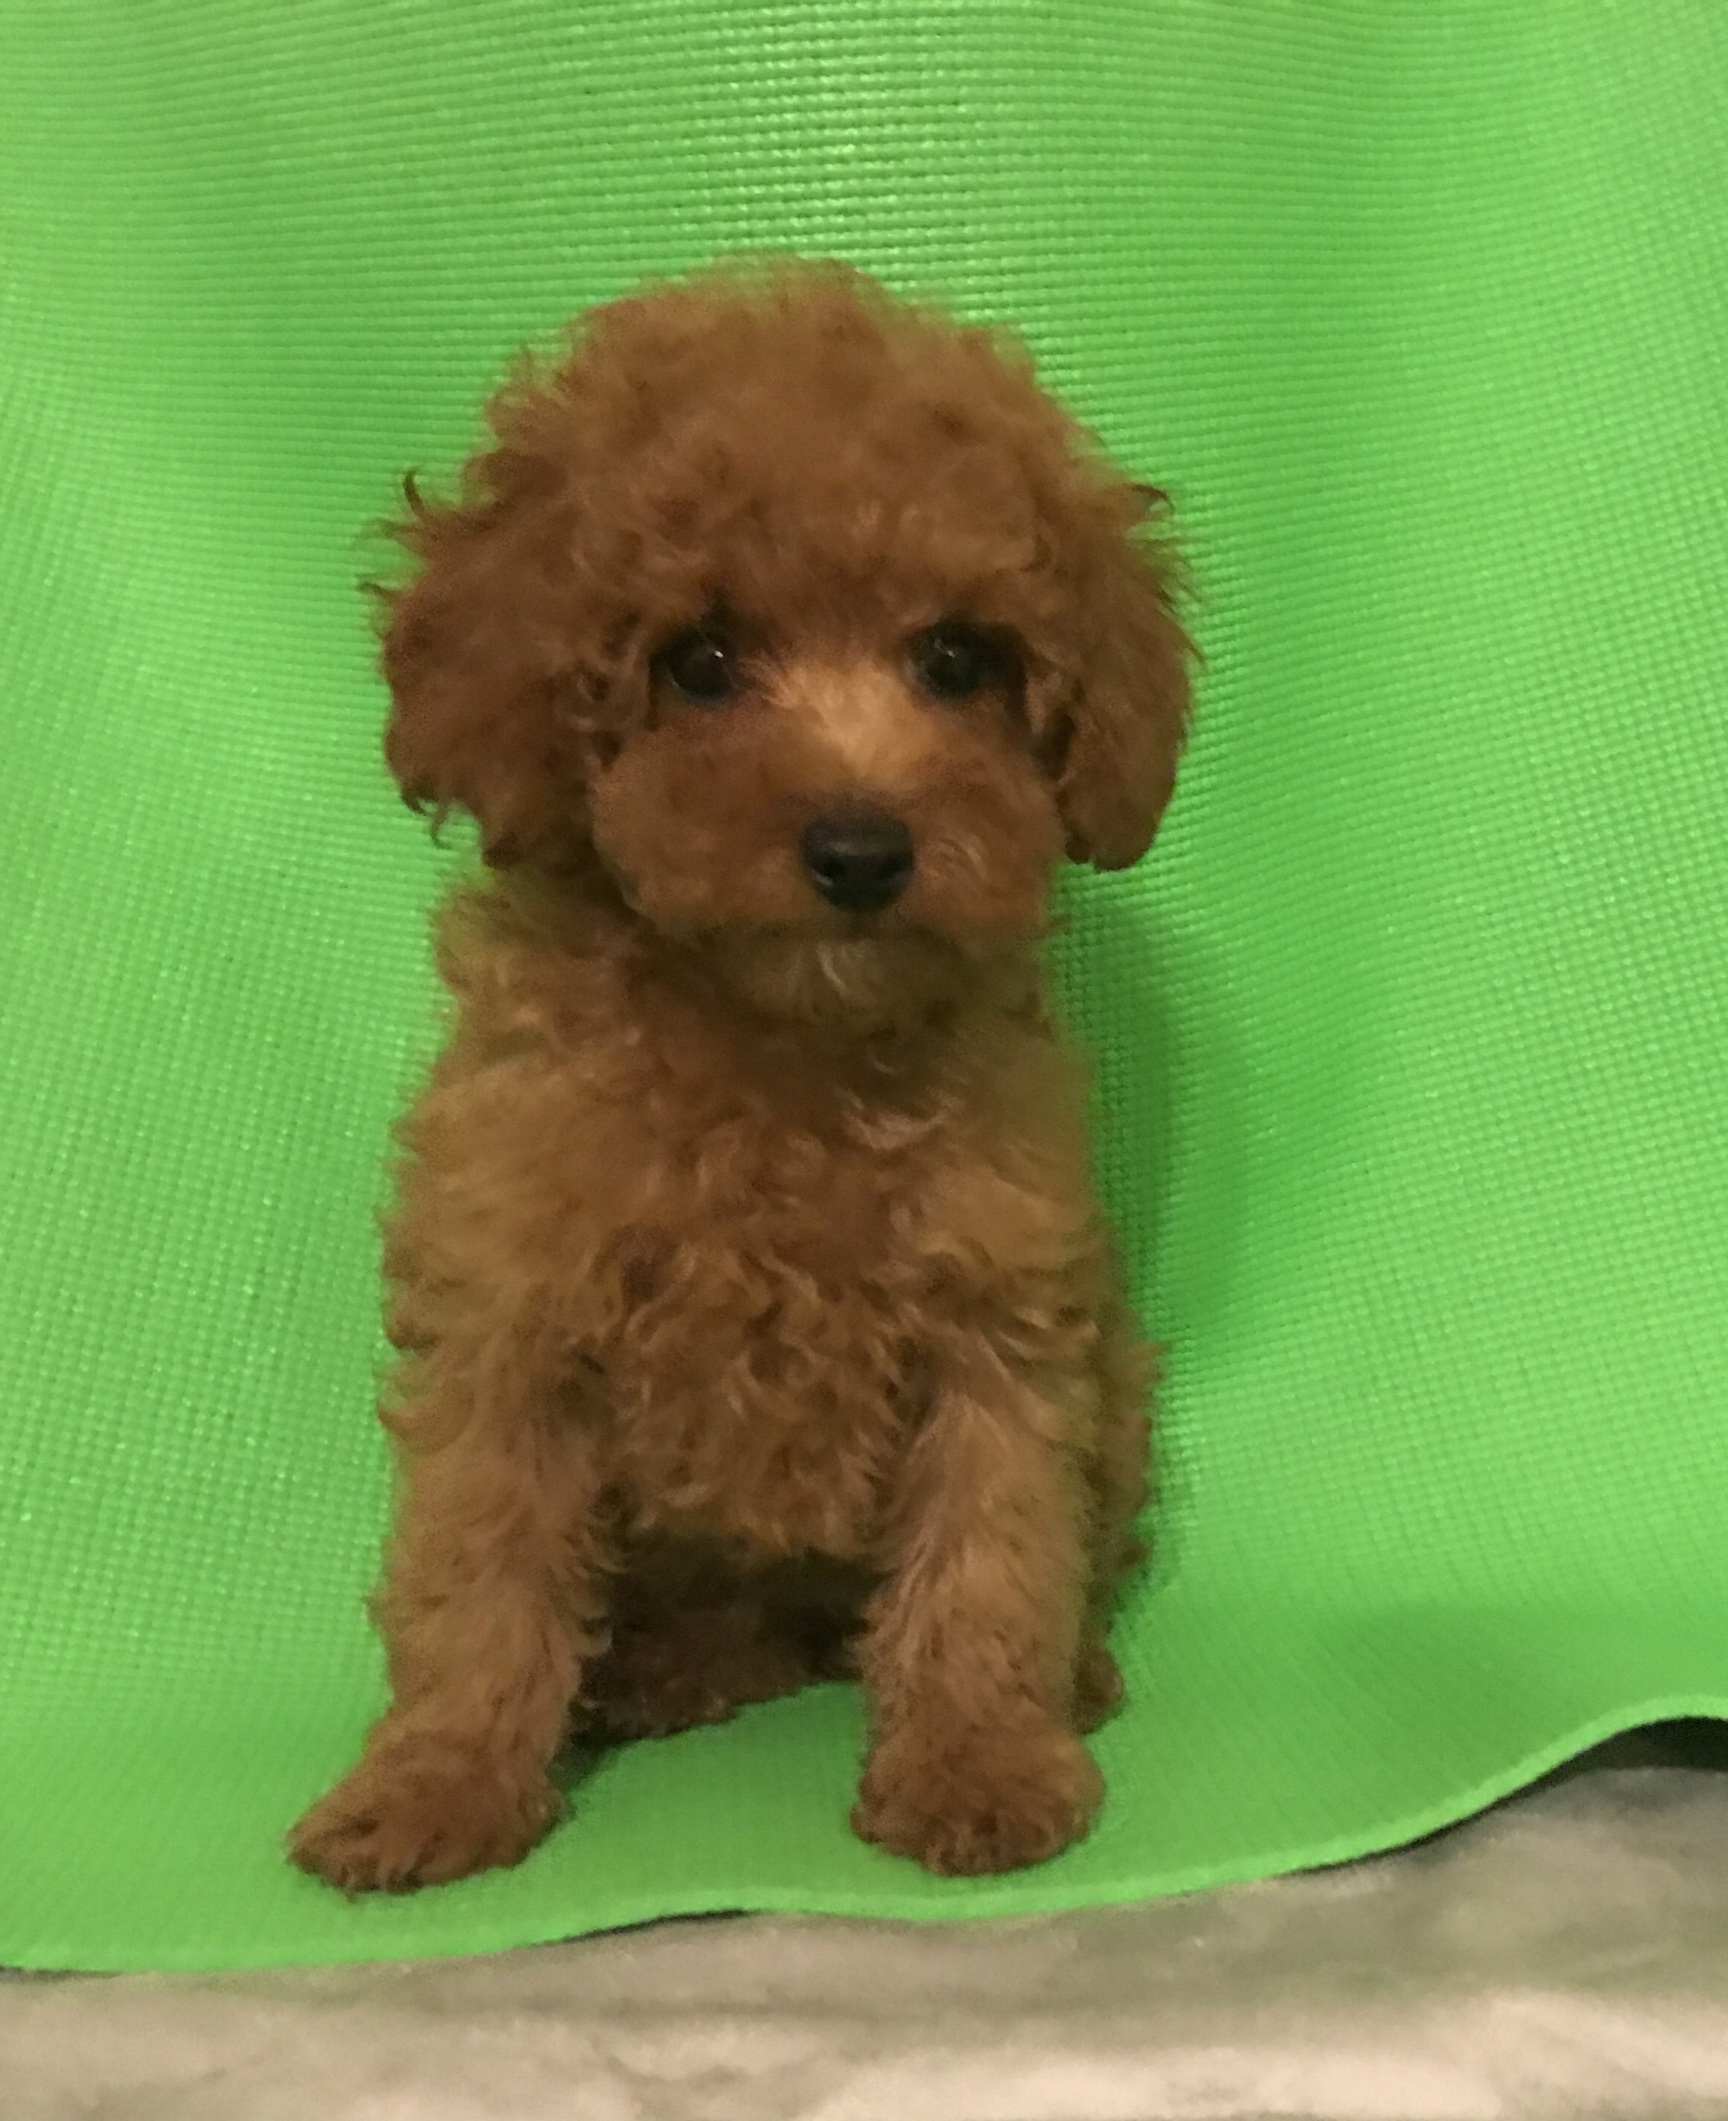 Looks like Teddybear  HARD TO FIND  Dark red color 20 EXPERIENCE  HOME RAISED PUPPIESHEALTH